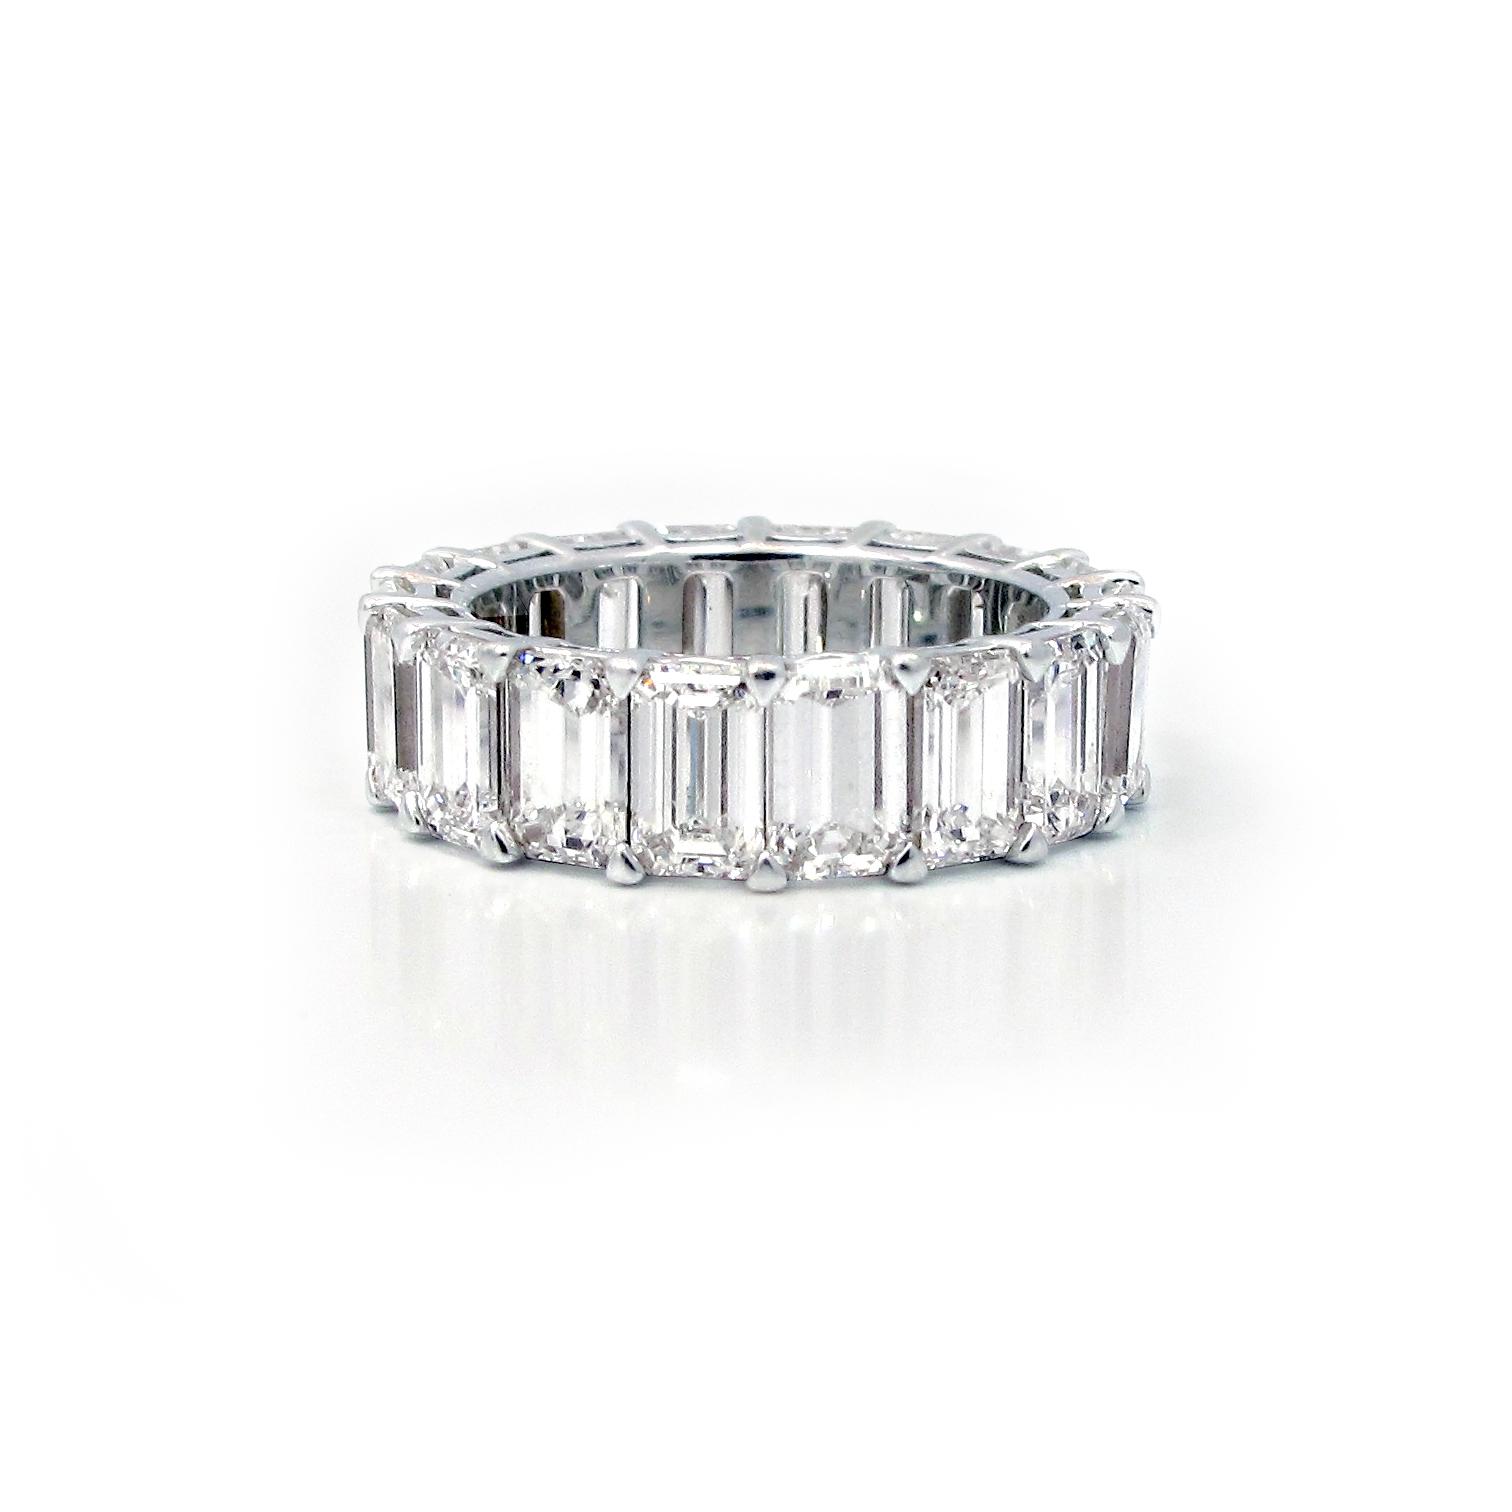 platinum jb band three product emerald shared eternity star bands prong diamond row cut